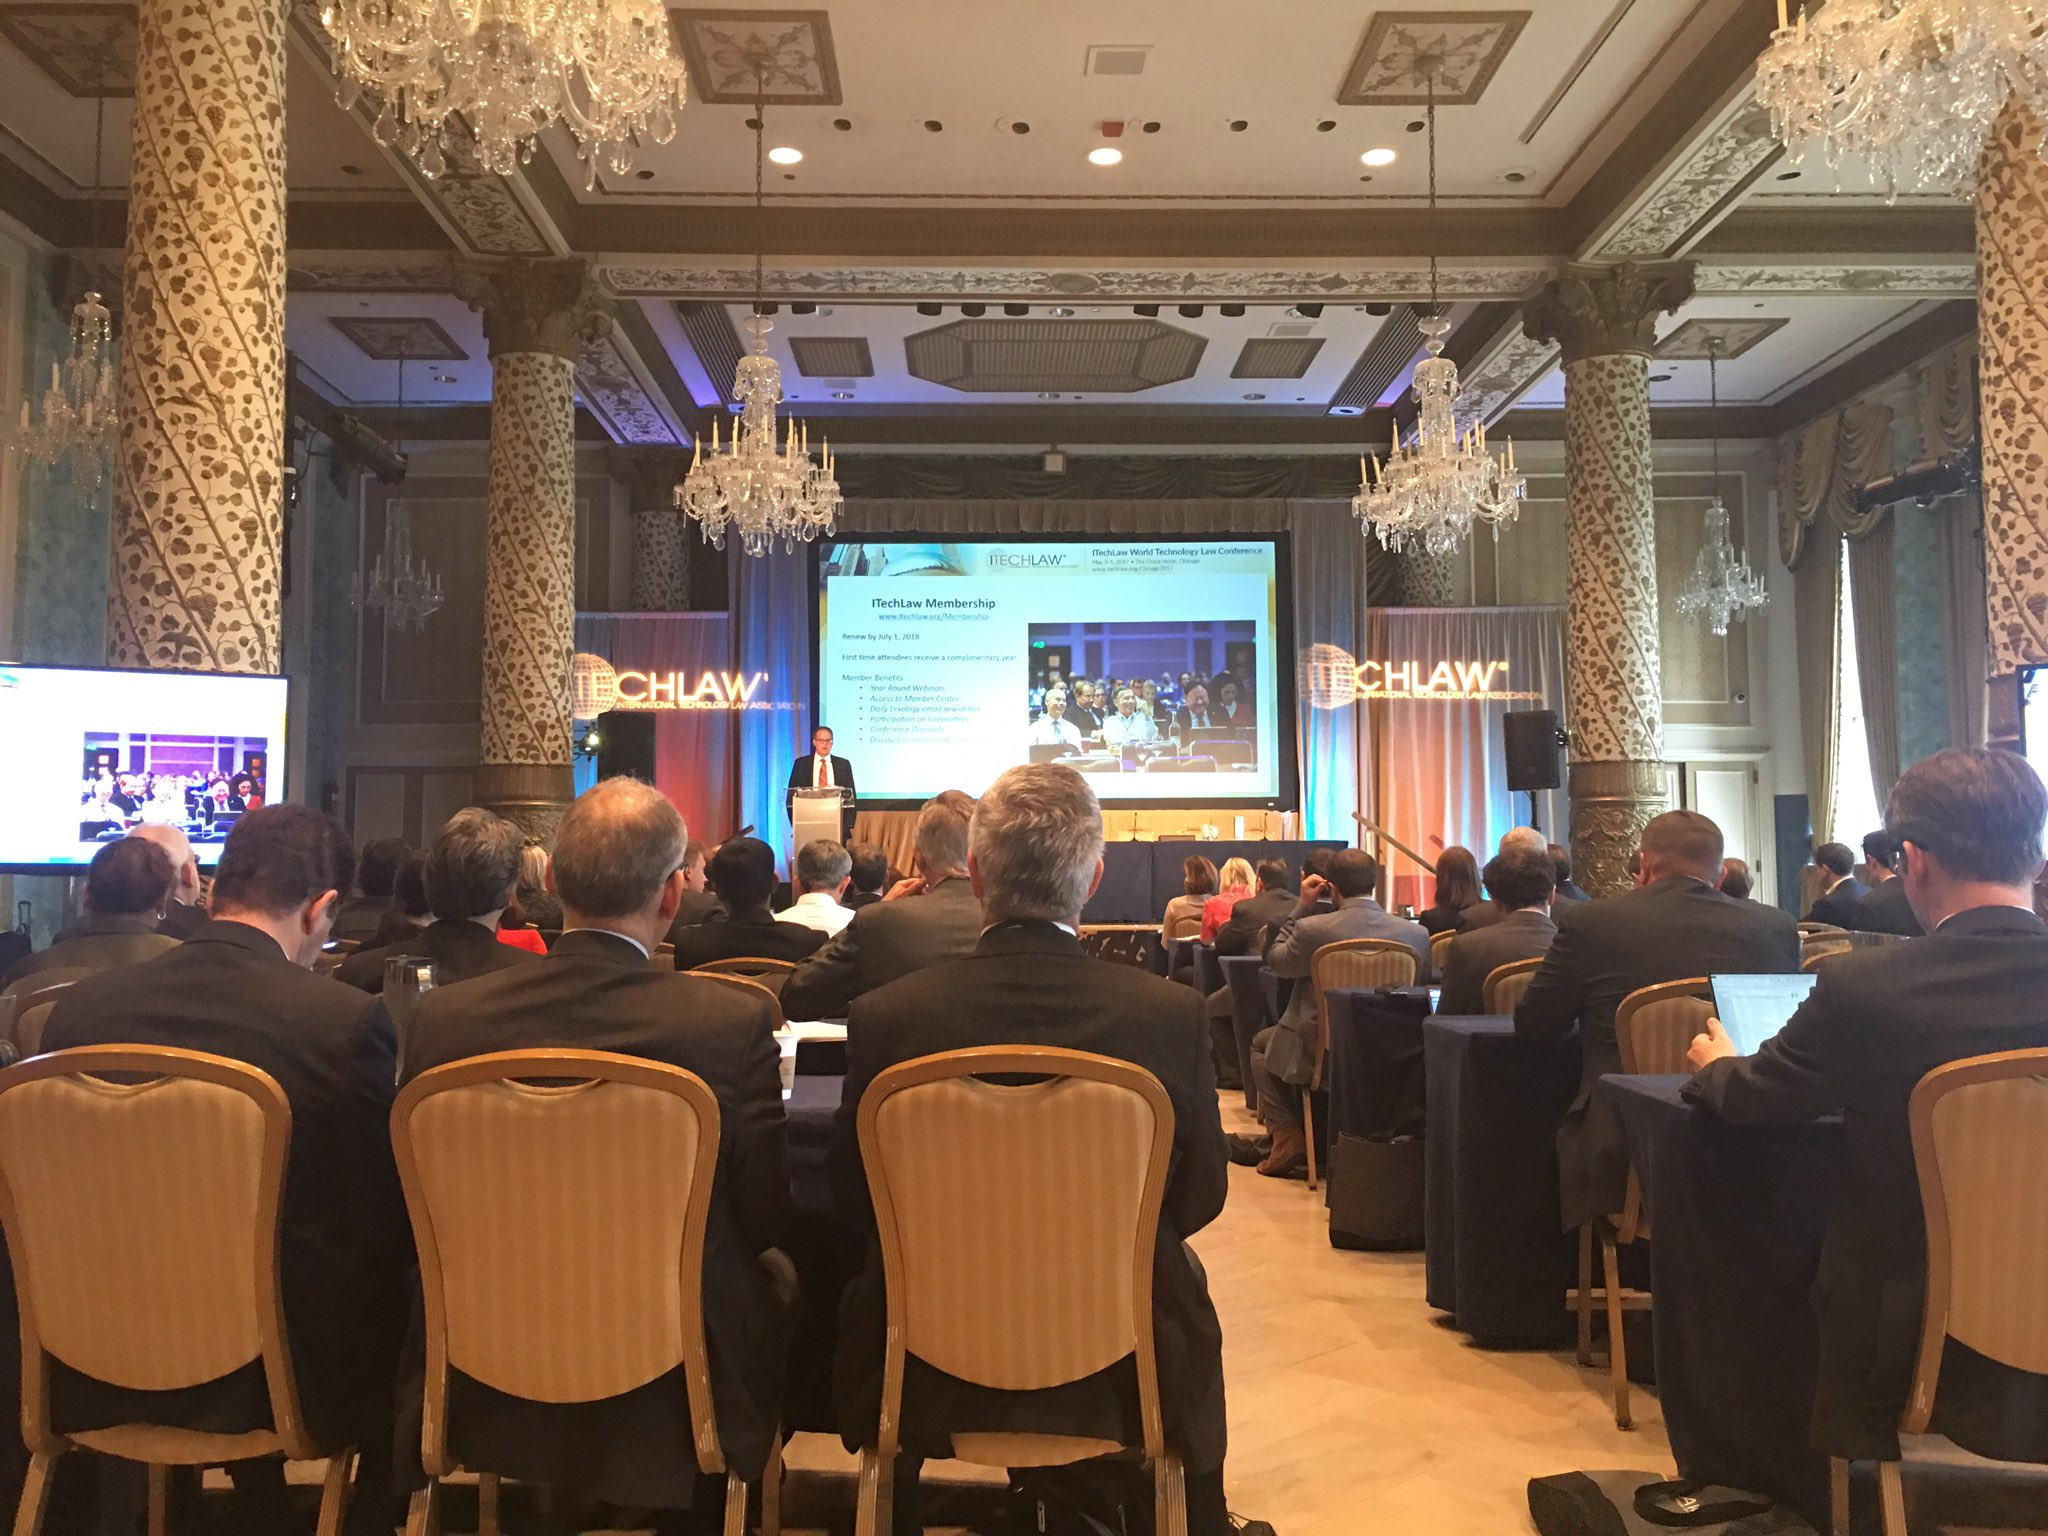 #ITLChicago kicking off @itechlaw_assn looking 4ward to an interesting day talking about latest trends in #tech & #law @ The Drake, Chicago https://t.co/8KbQmjOu5b